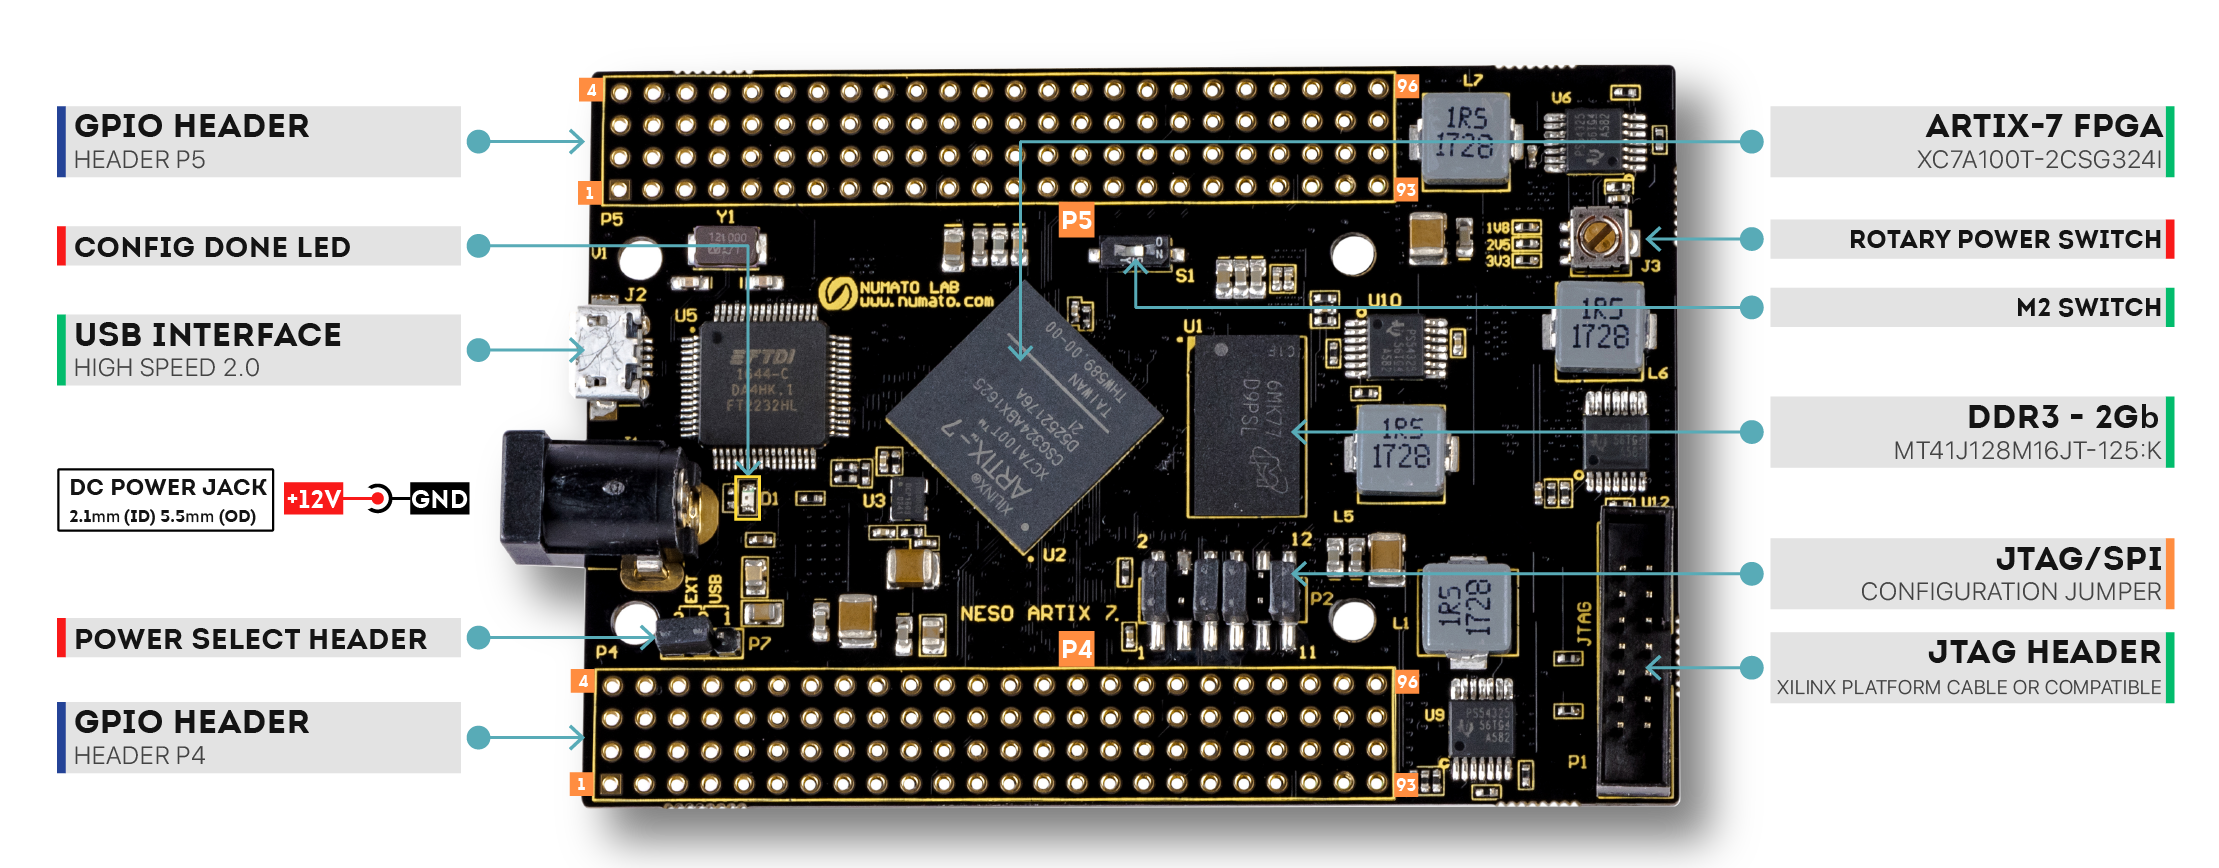 Neso FPGA Artix 7 Dev Board - Wiring Diagram